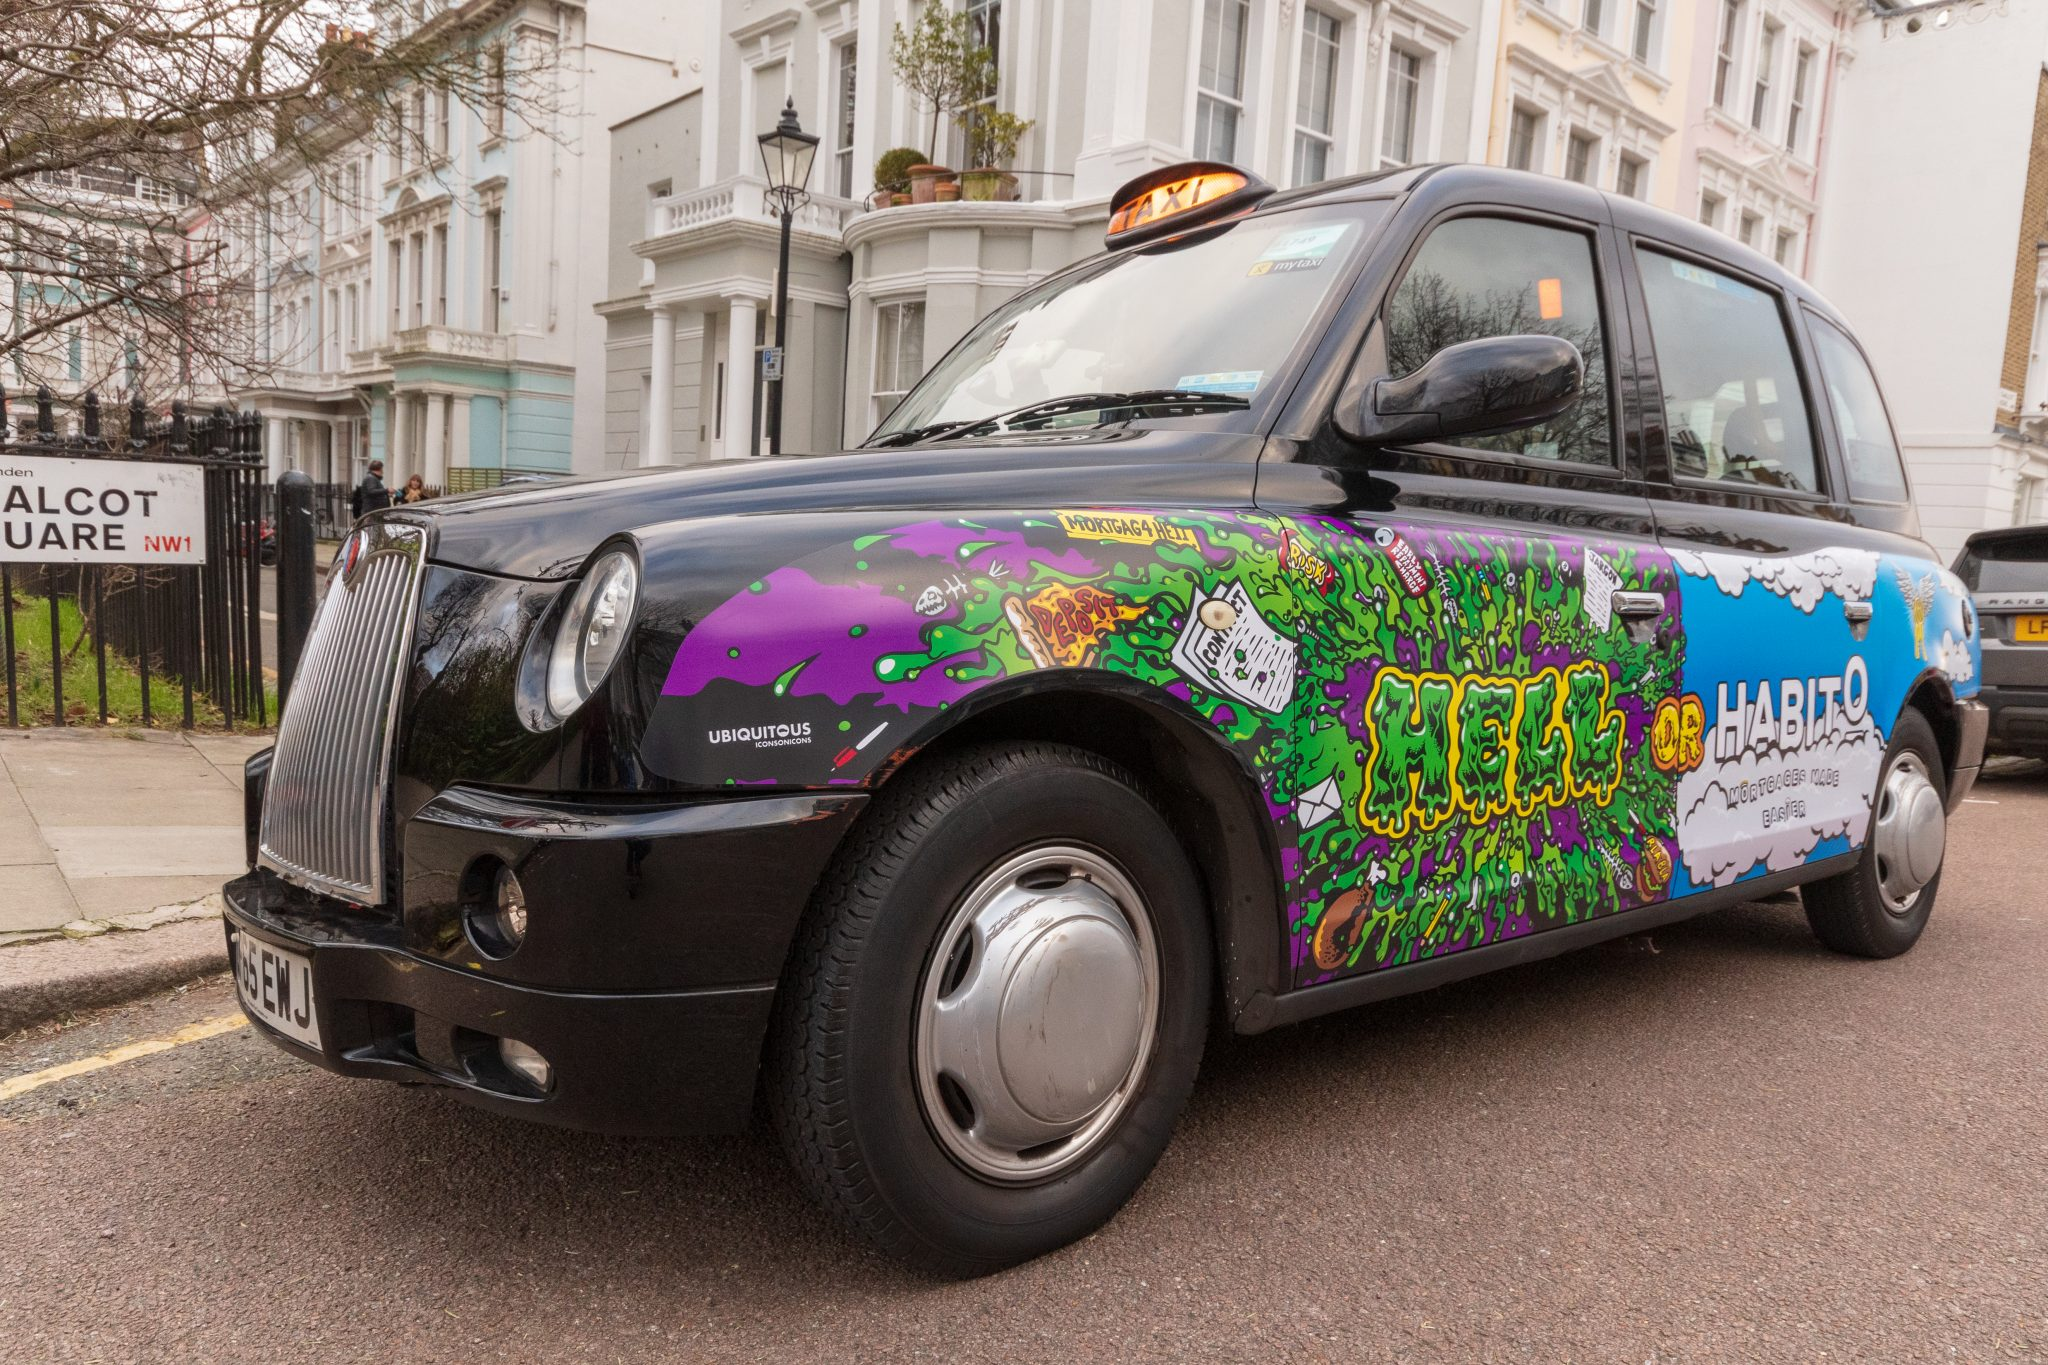 A Habito advert on a black cab in London.